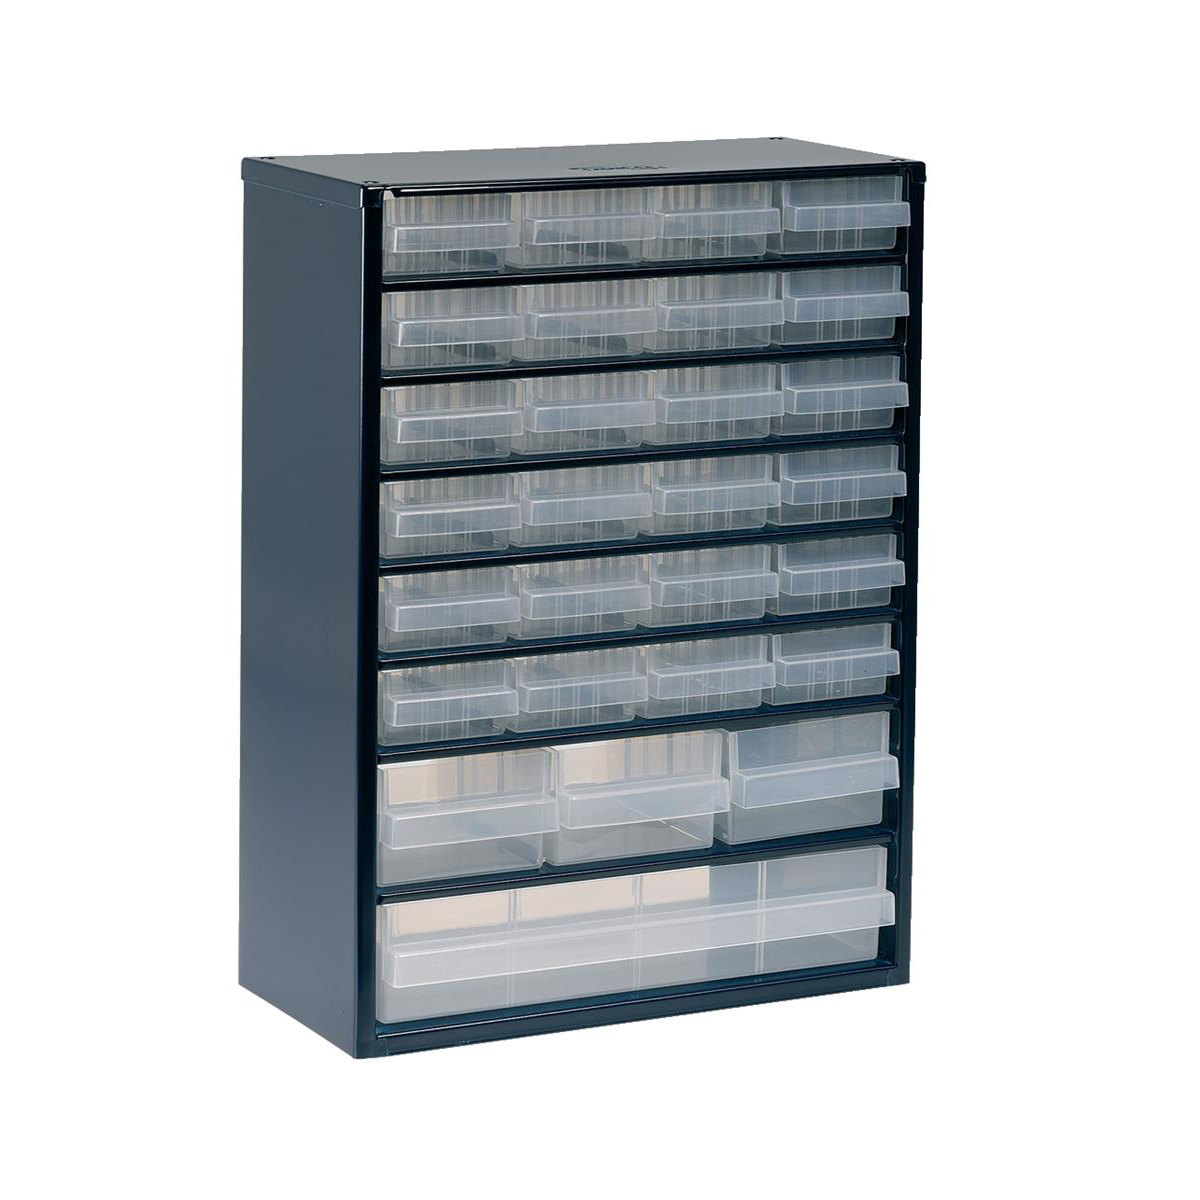 Raaco Workshop Kit 1-Cabinet 3-Steel Wall Panels 22-Assorted Clips 16-Storage Bins Easy Set-Up Ref 139830